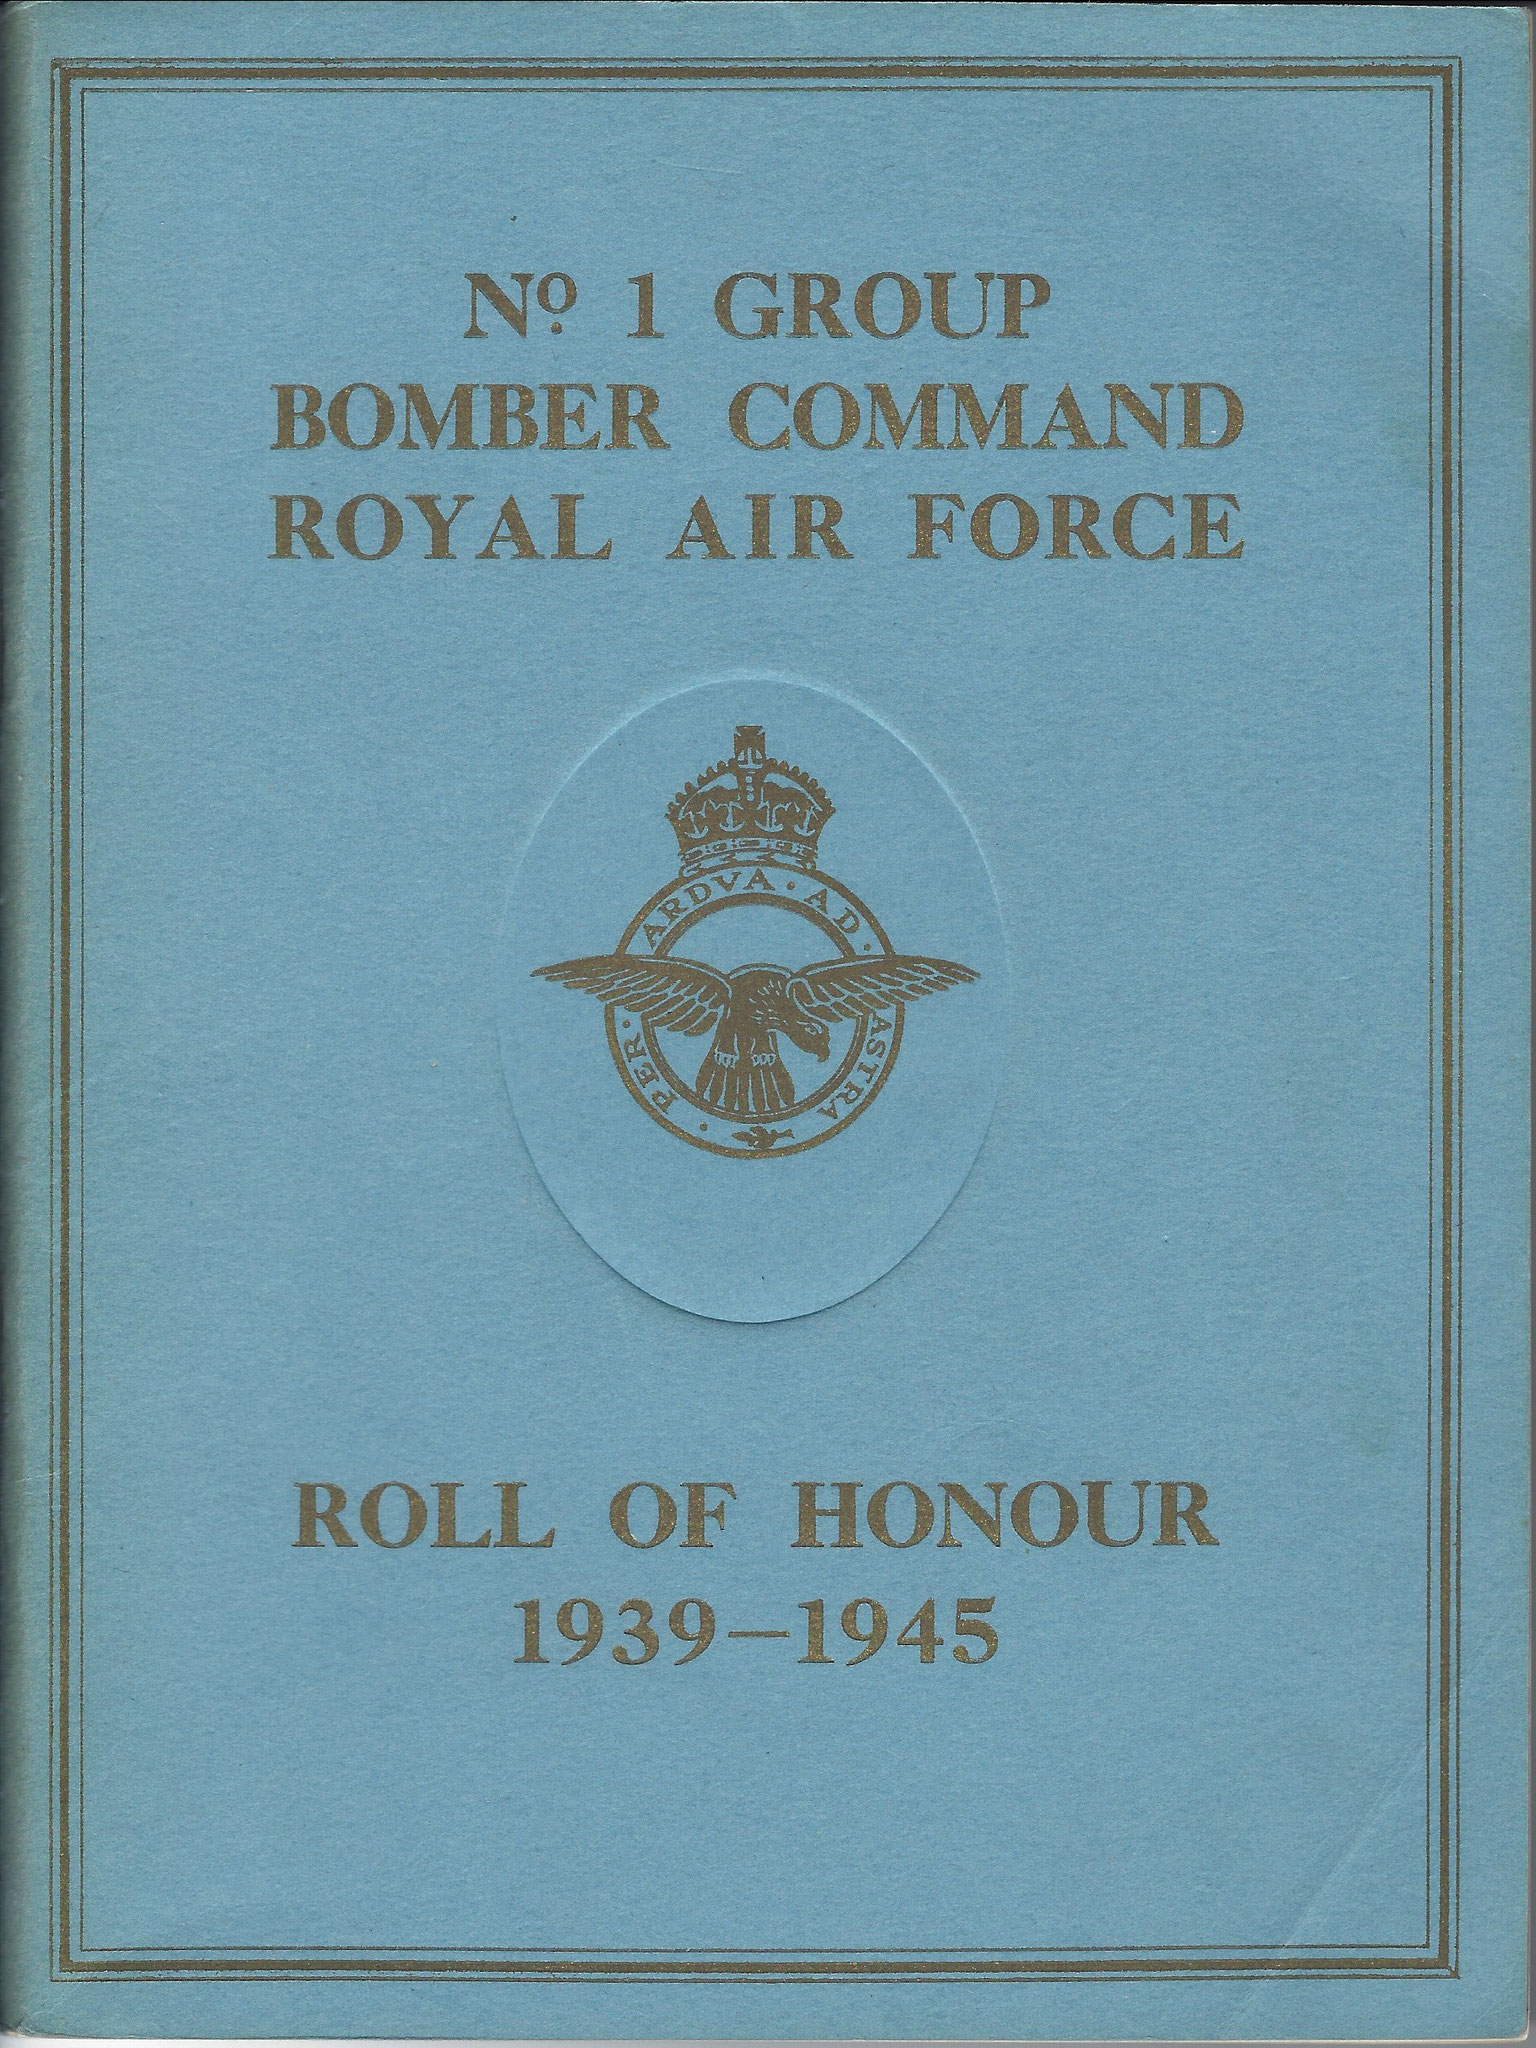 Roll of Honour, No.1 Group Bomber Command, Royal Air Force, 1950 (collection P. Reinders)